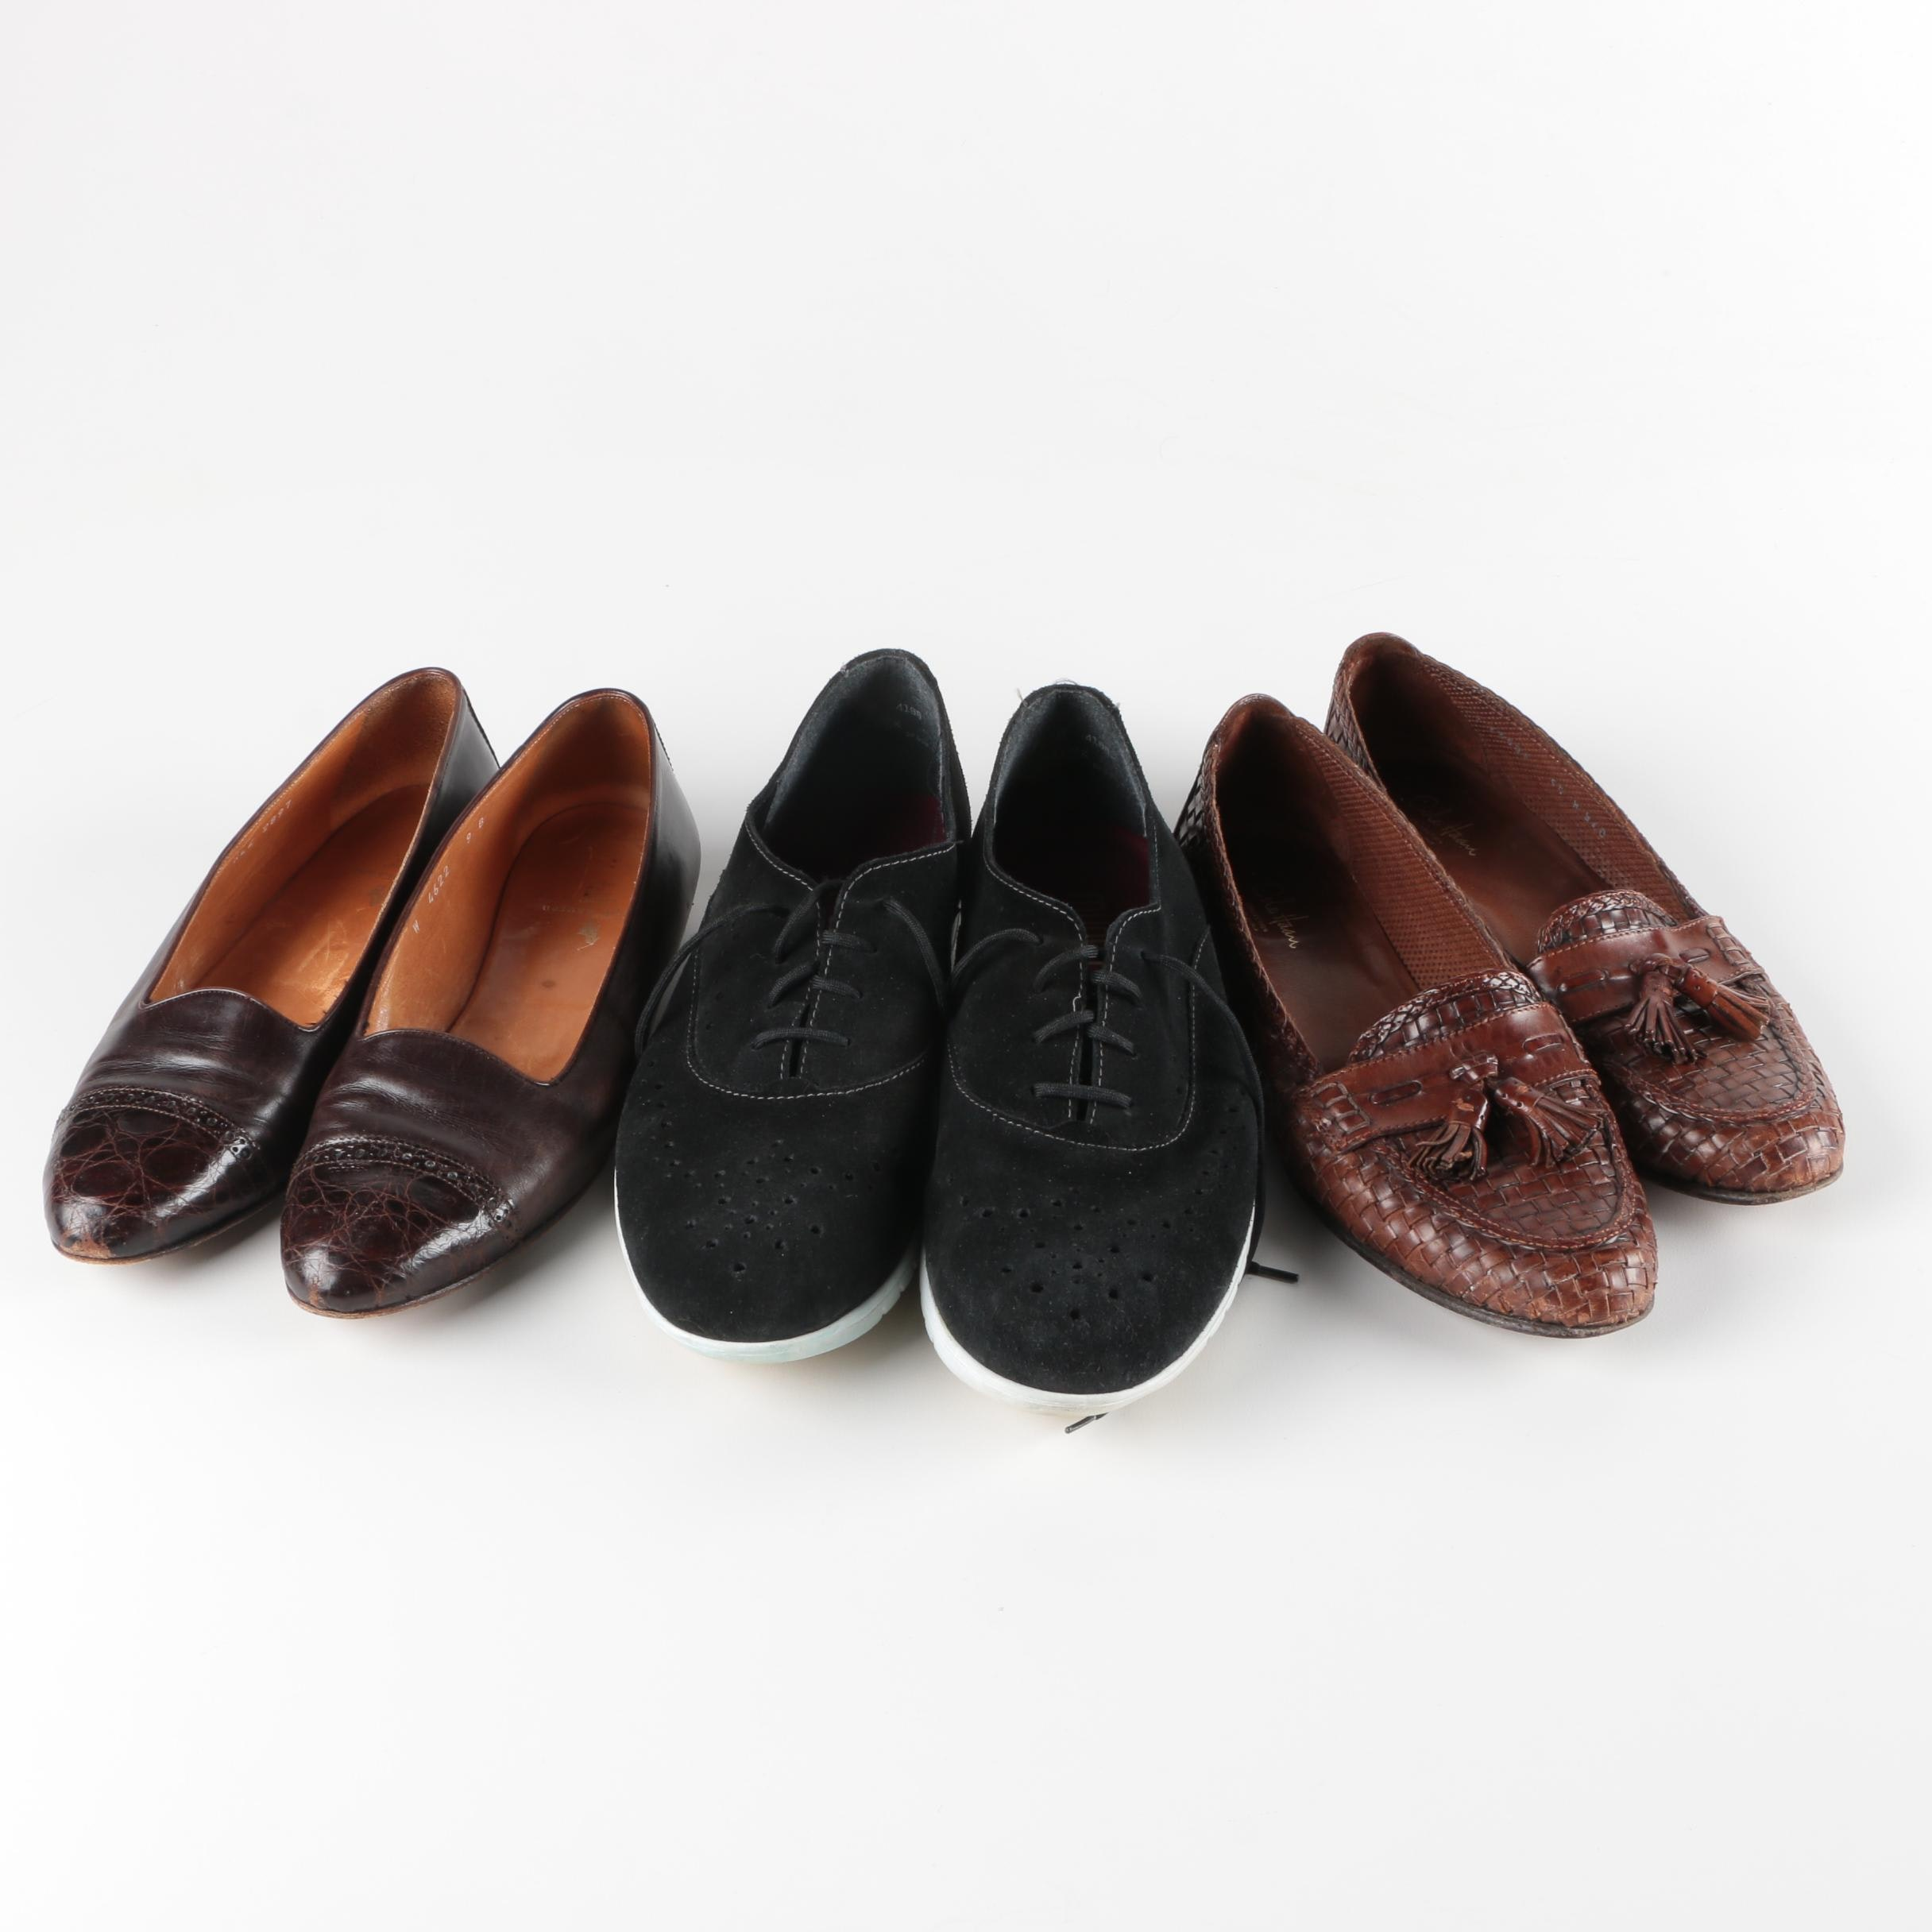 Two Pairs of Women's Loafers and Suede Sport Sneakers